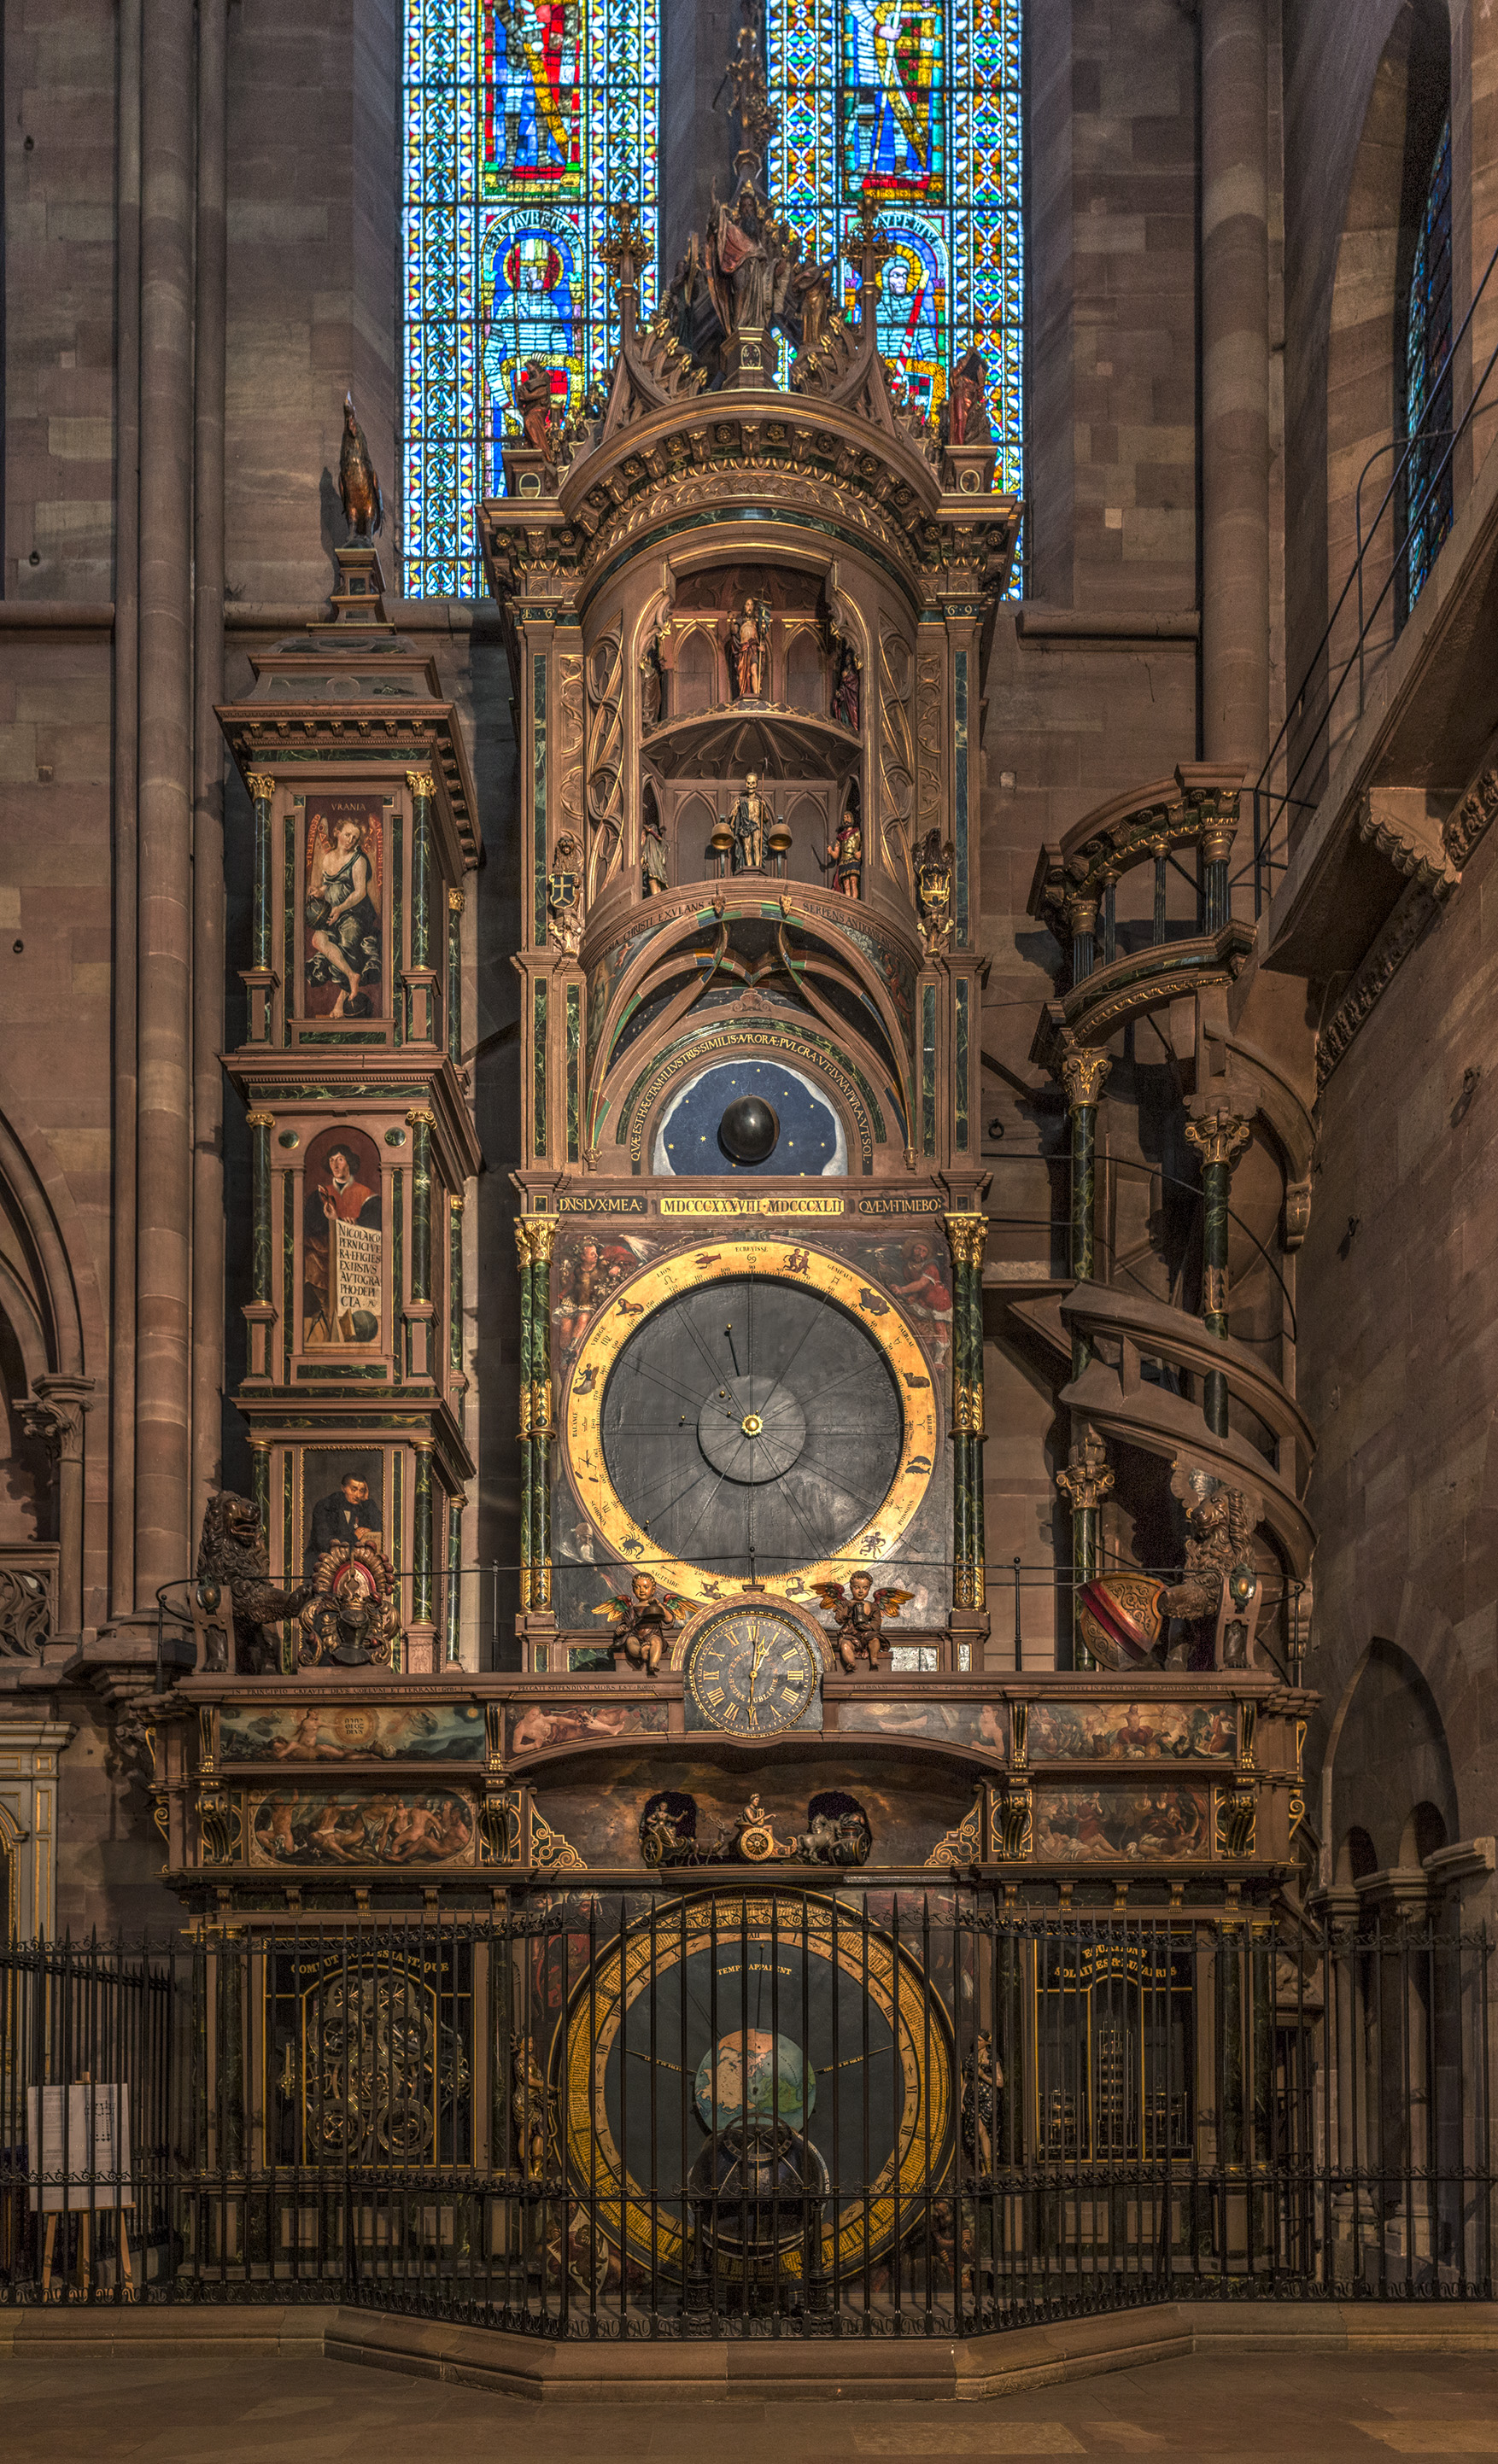 Strasbourg_Cathedral_Astronomical_Clock_-_Diliff.jpg